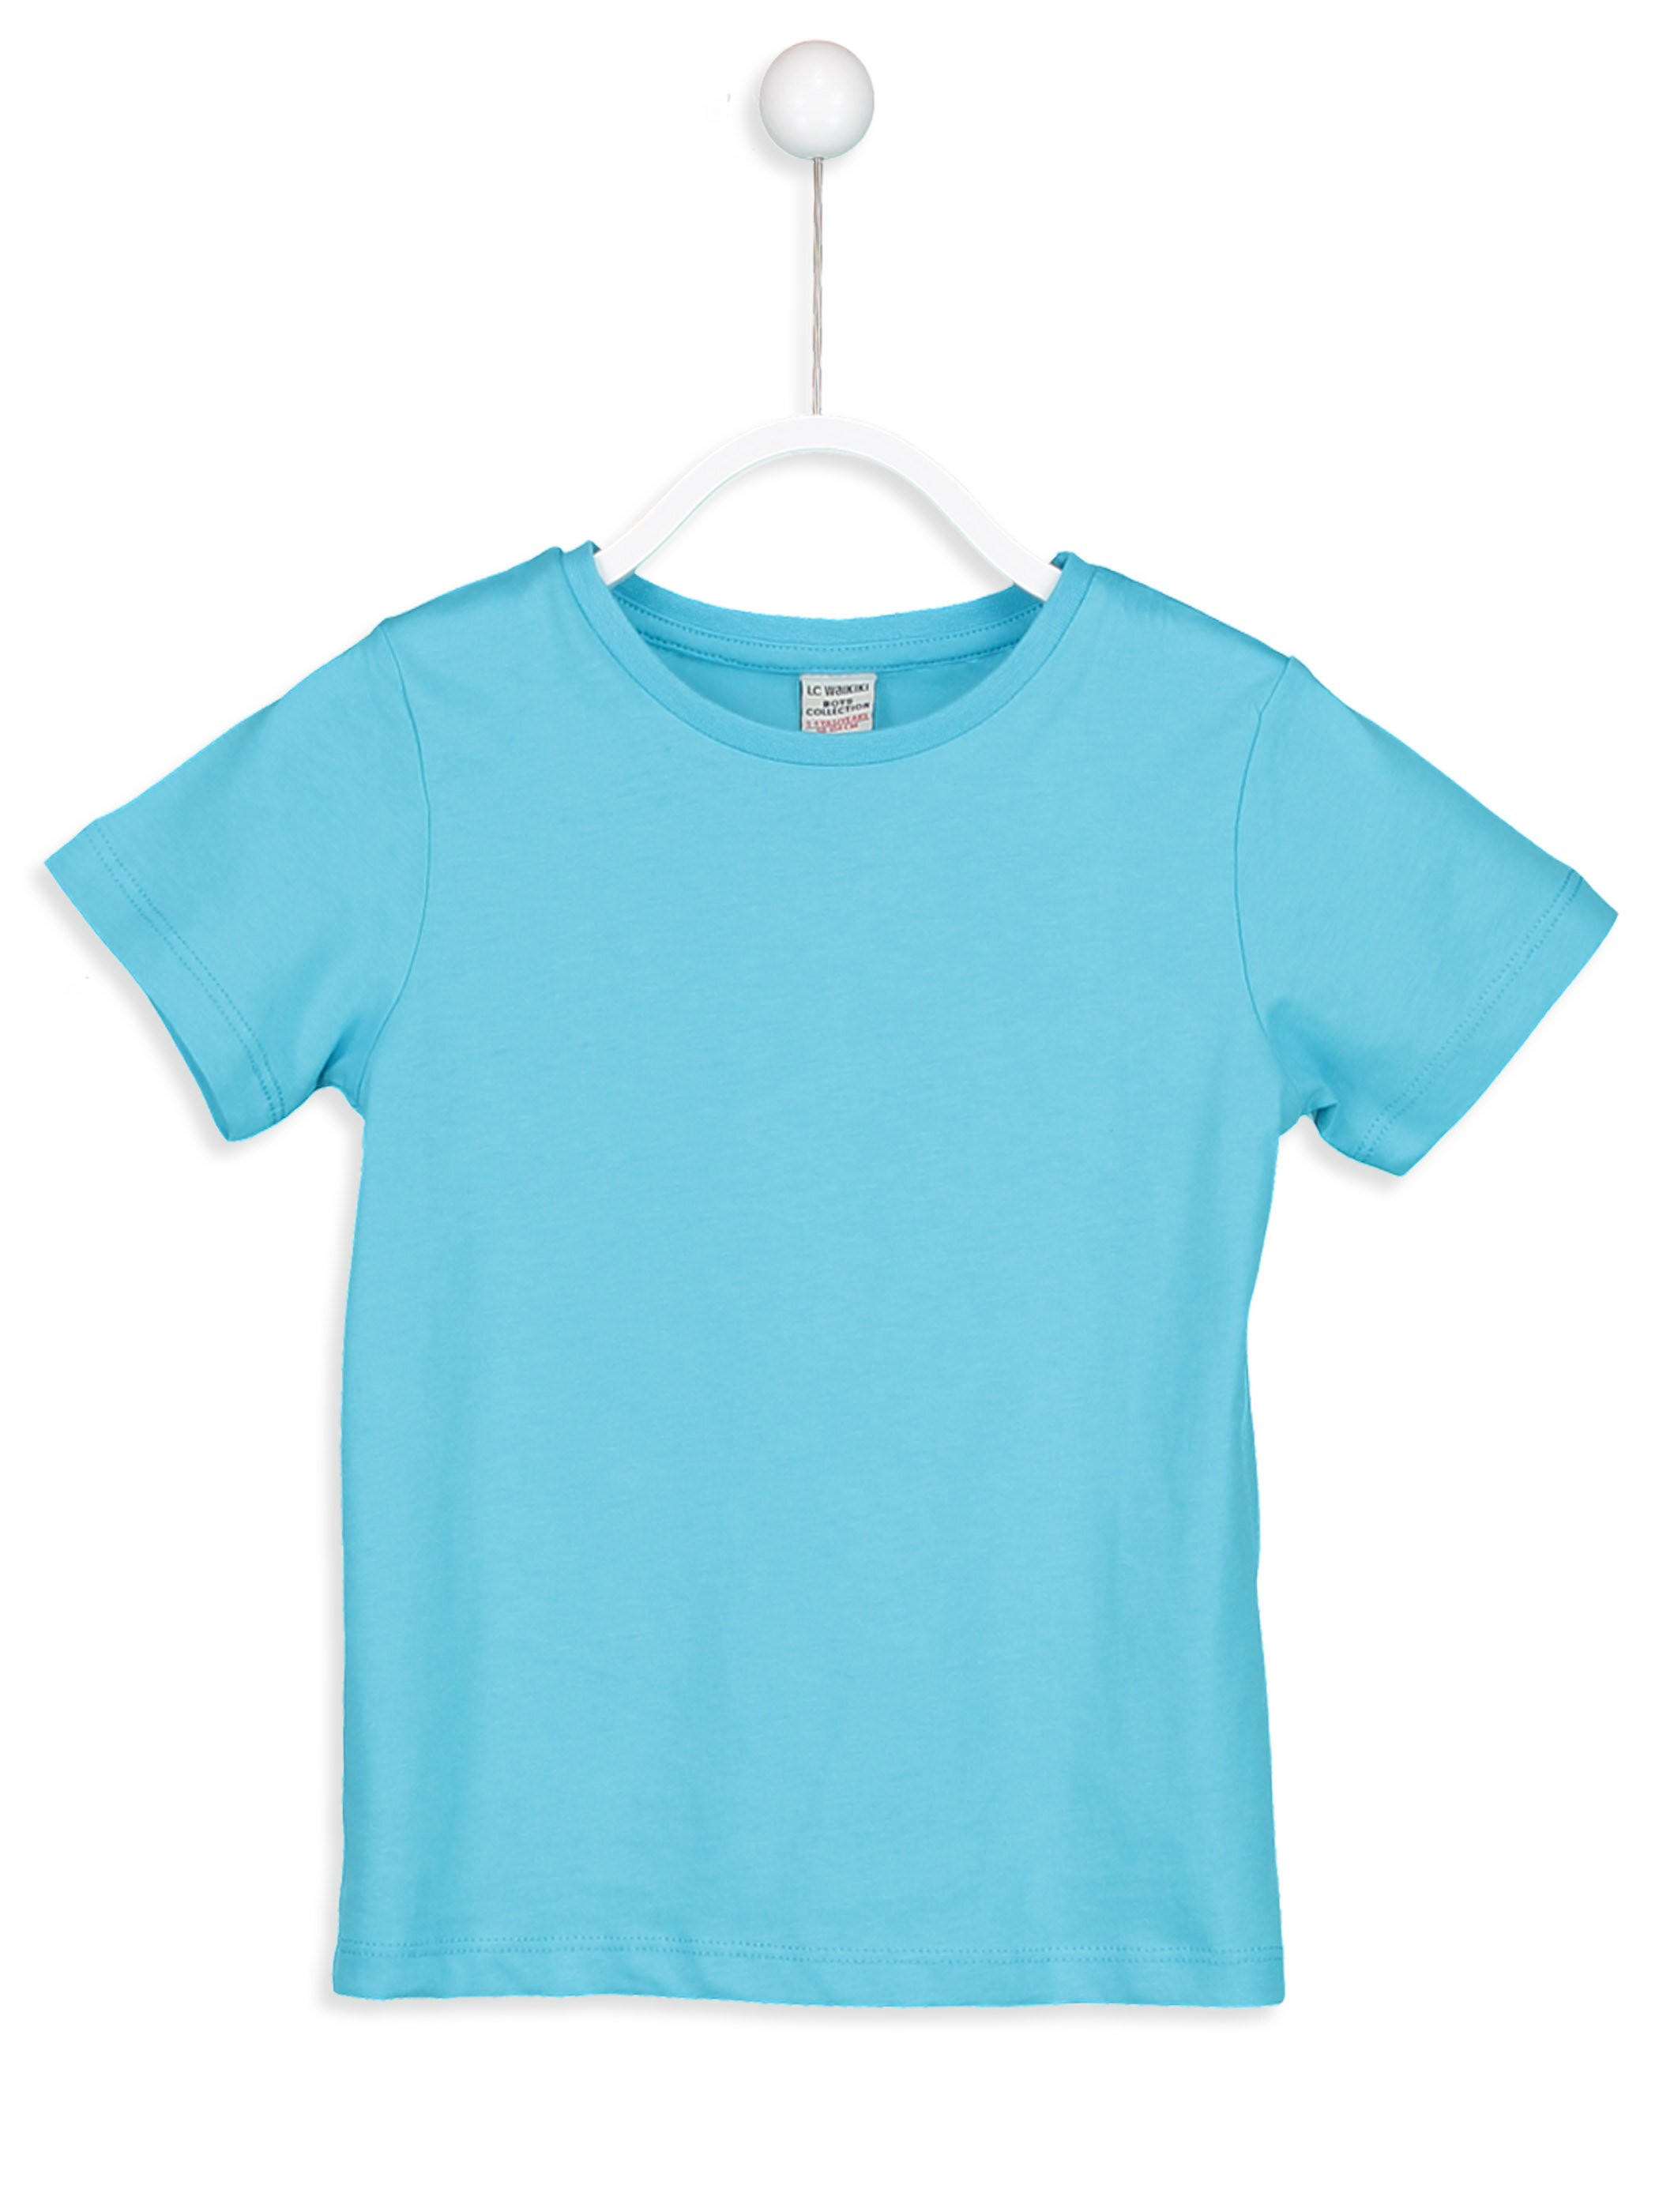 TURQUOISE - T-Shirt - 8S1801Z4